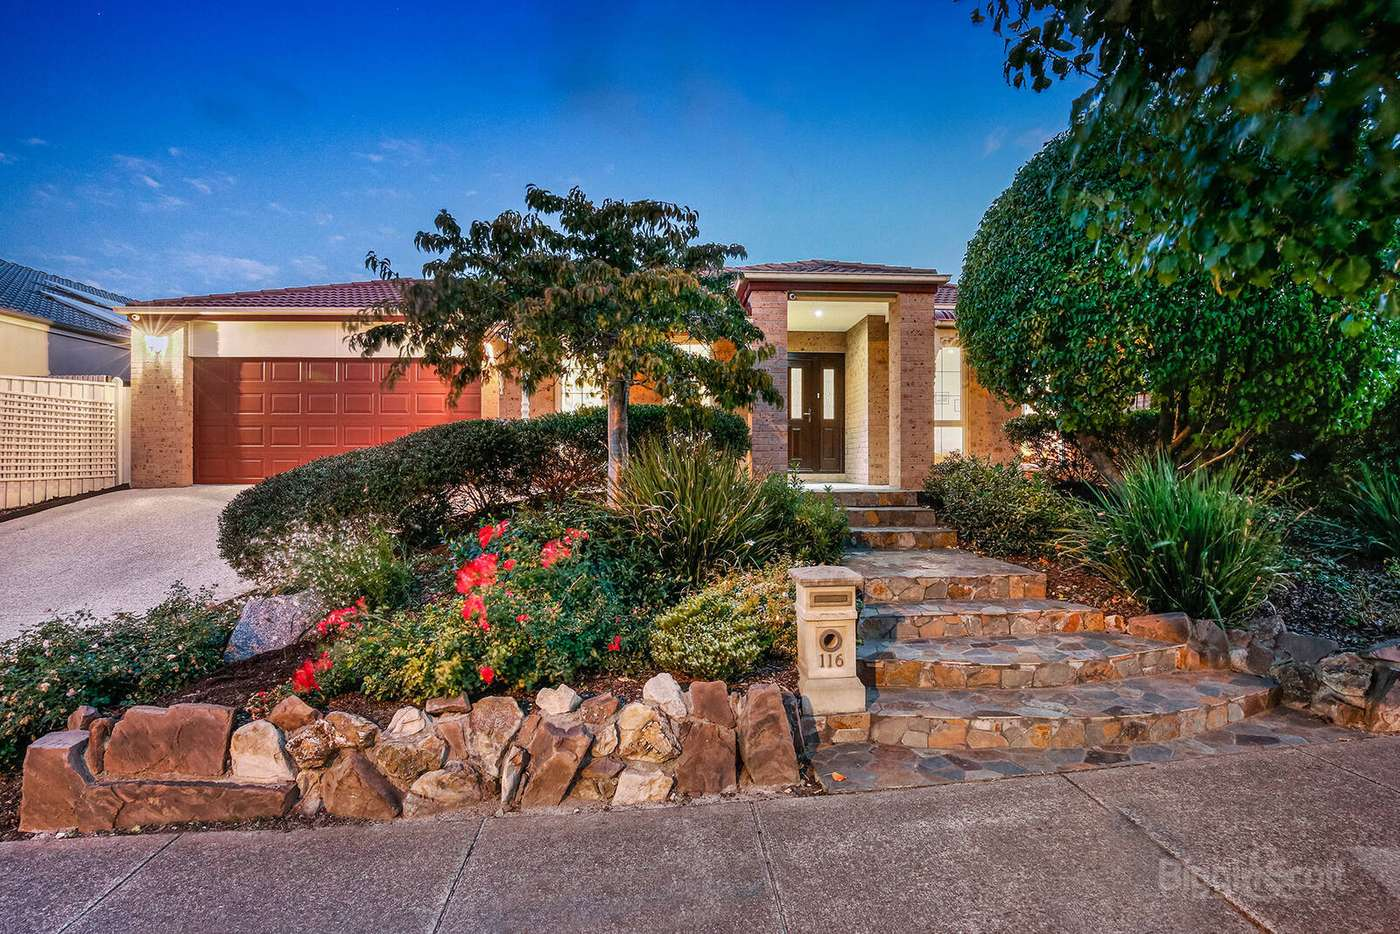 Main view of Homely house listing, 116 Rosebank Drive, Cranbourne North VIC 3977